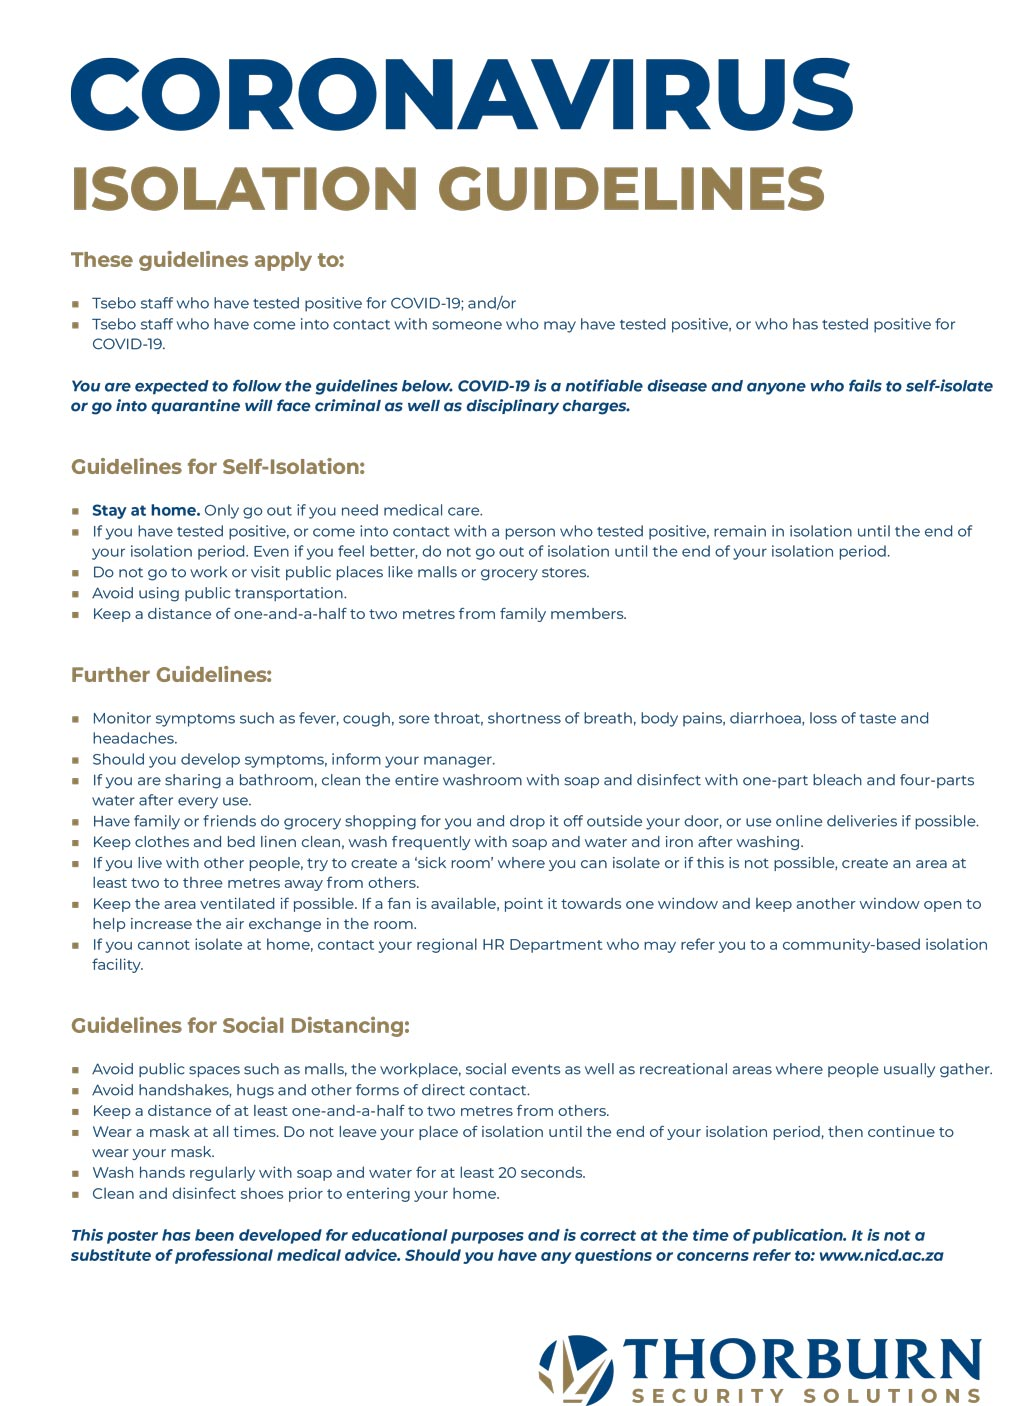 Thorburn Security Services South Africa - Our Values - Isolation Guidelines